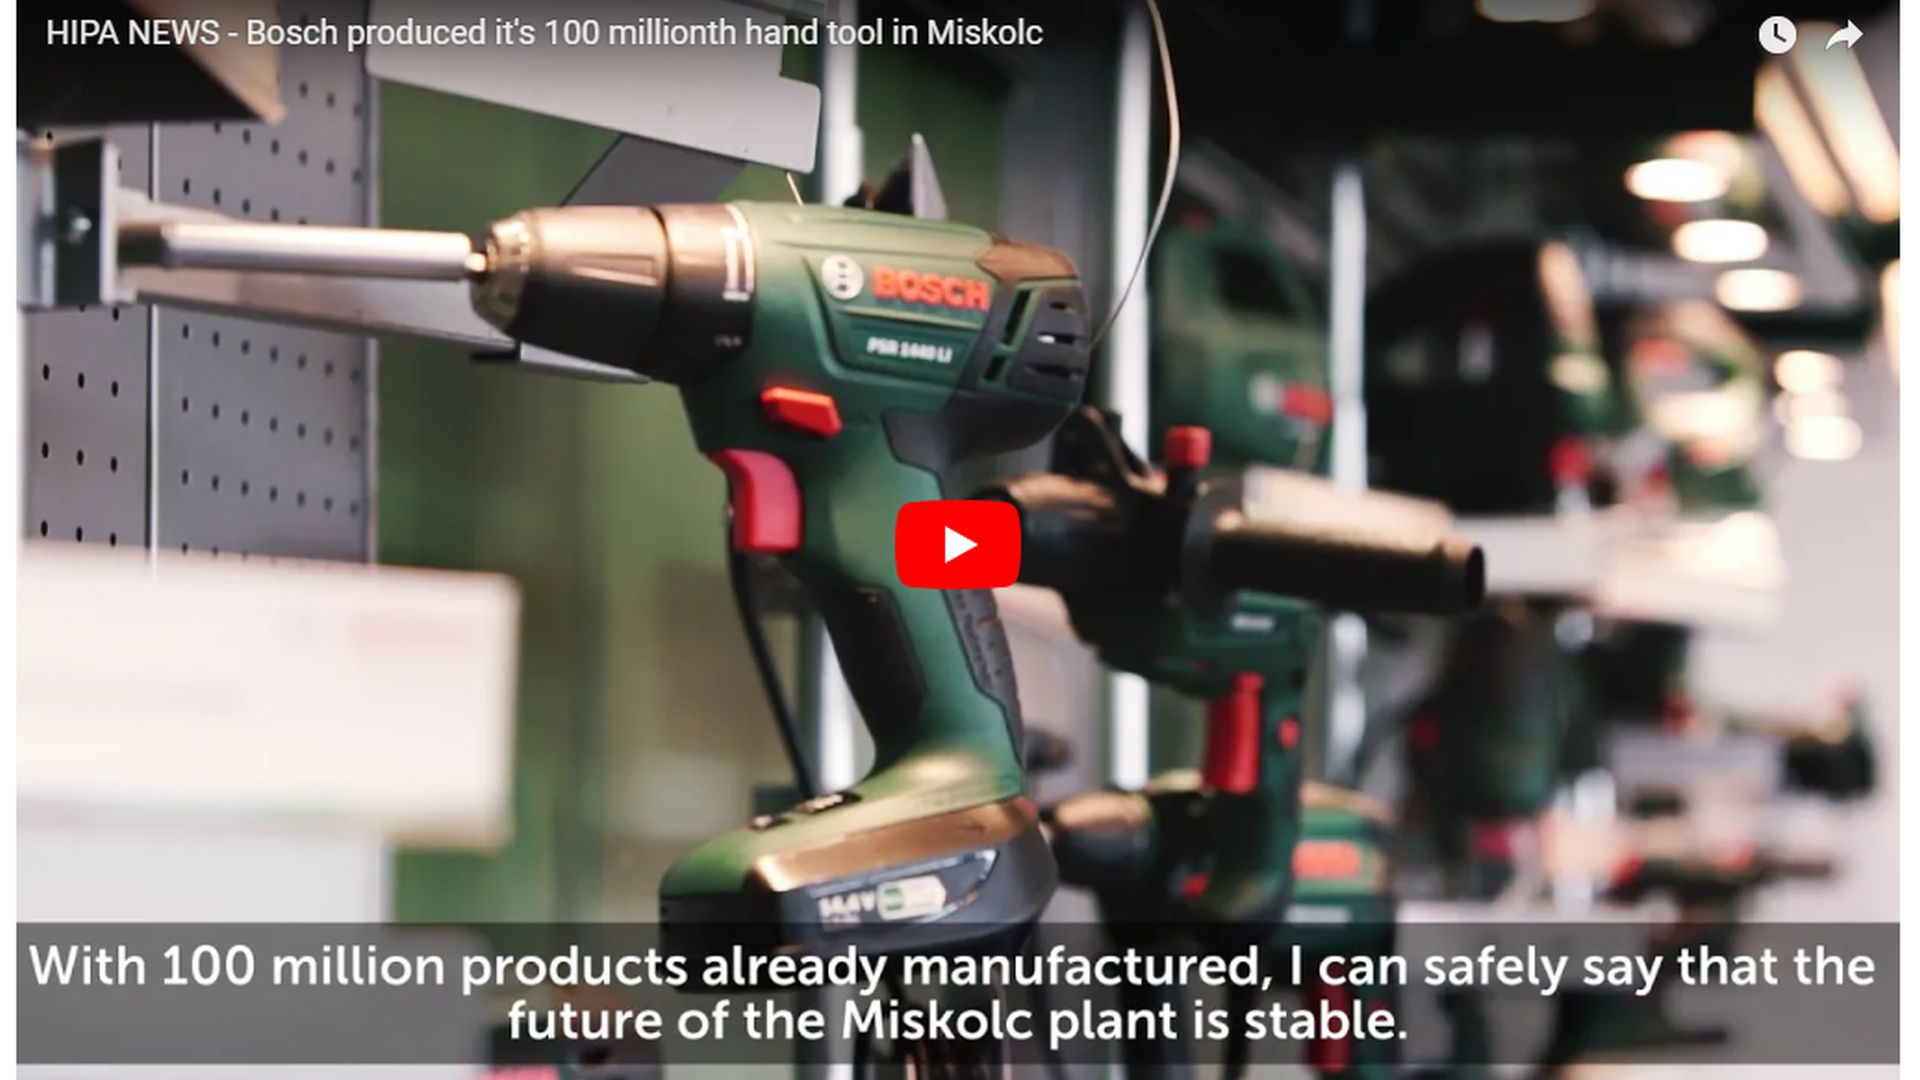 Bosch plant in Miskolc is one of the most innovative units of machine construction - VIDEO REPORT